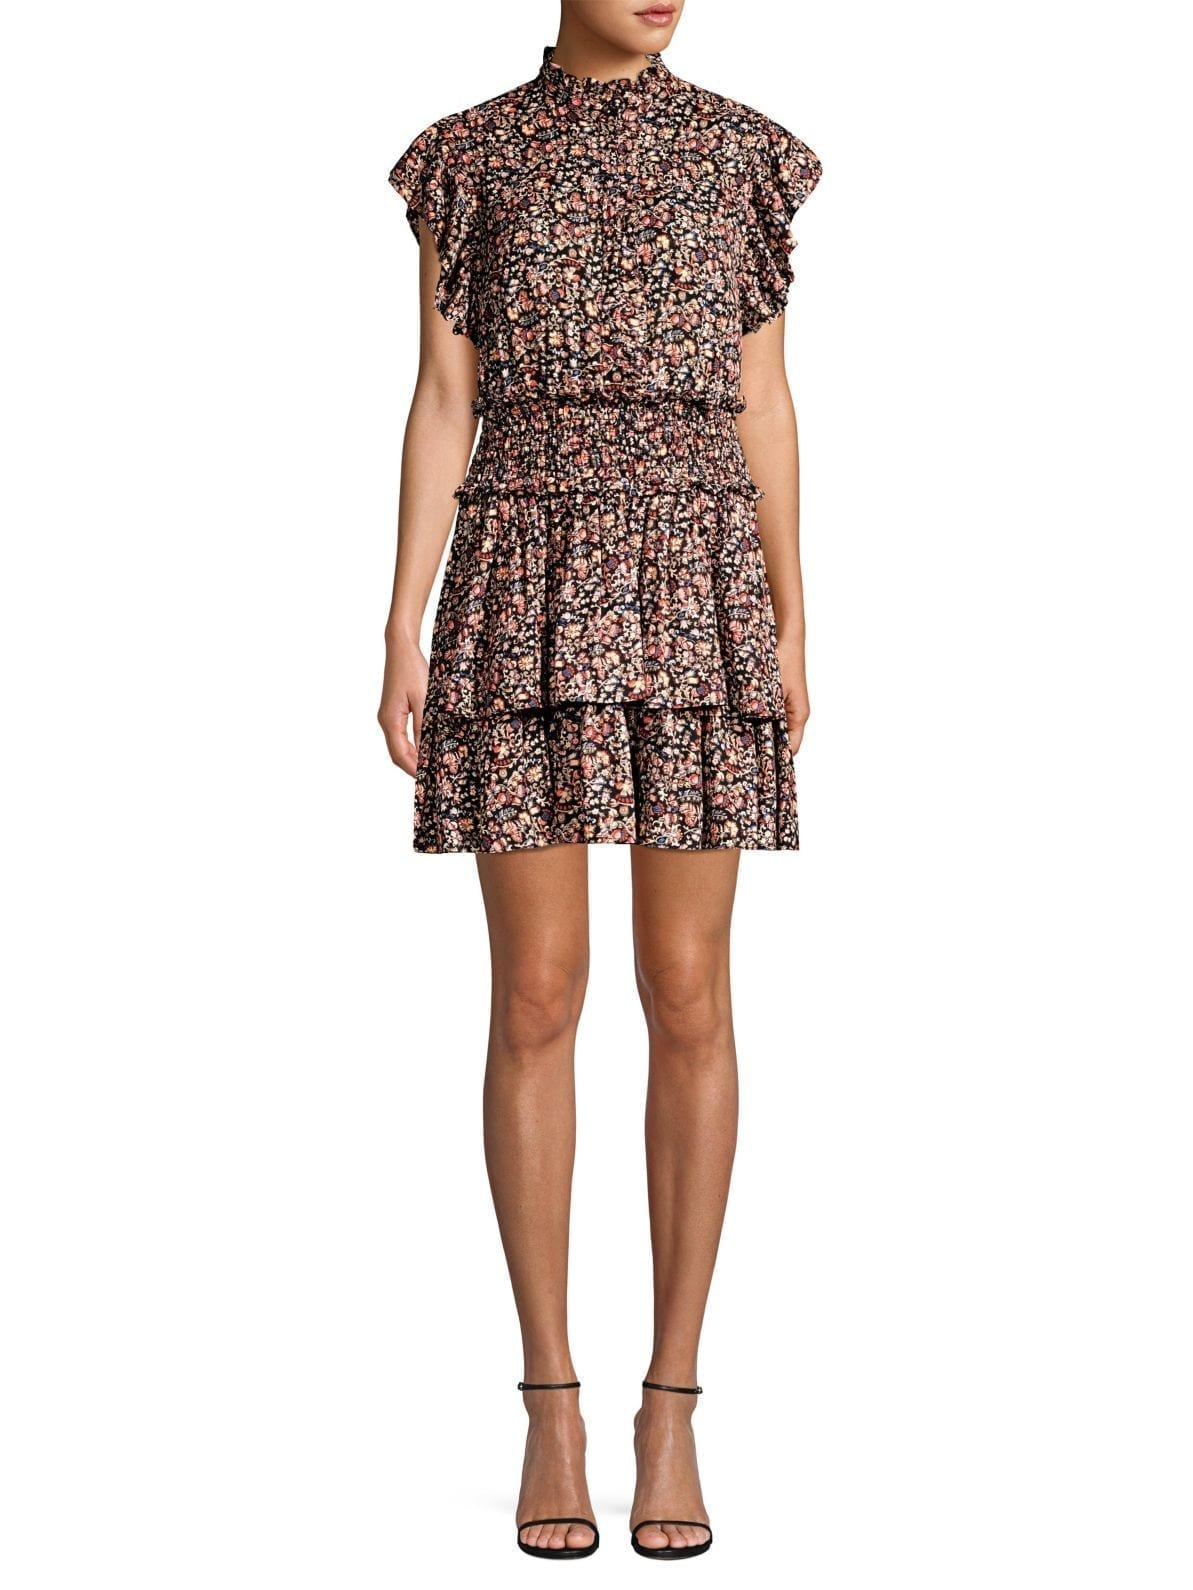 LA VIE REBECCA TAYLOR Gitane Floral Ruffle High-Neck Black Dress